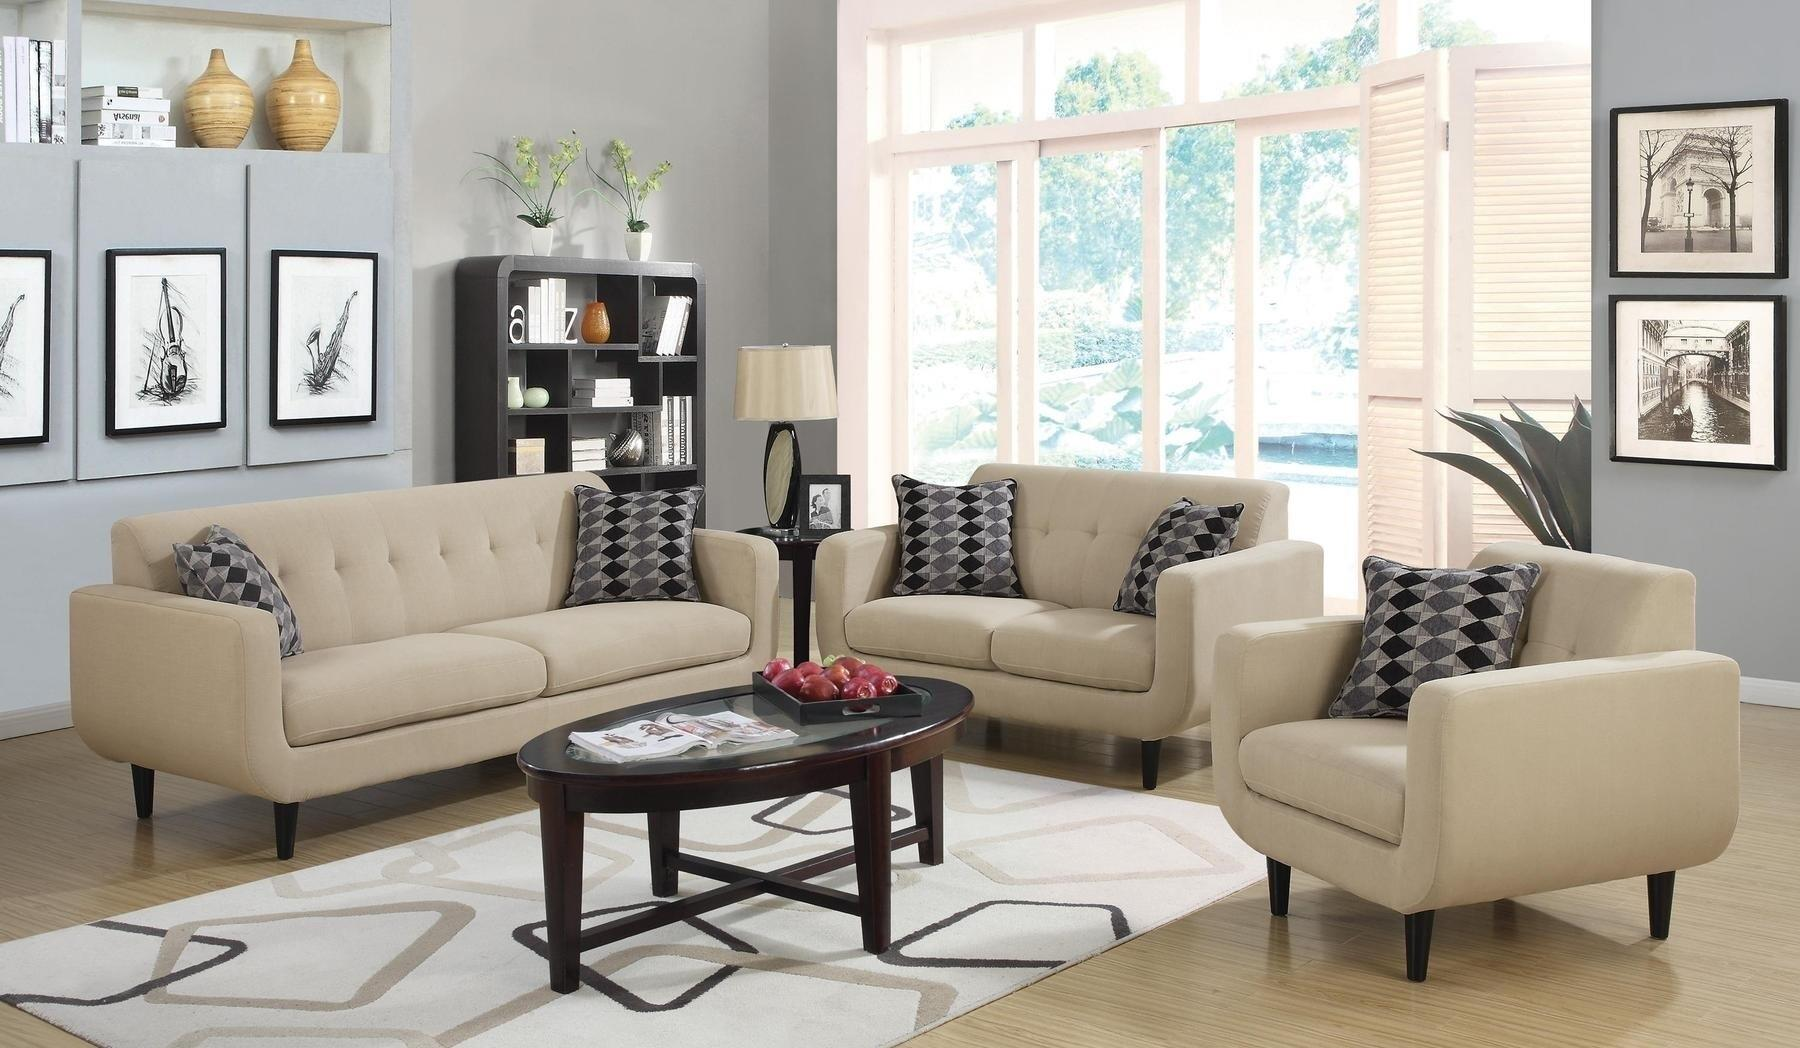 Coaster 505204slc stansall living room sets appliances for Living room of satoshi tax